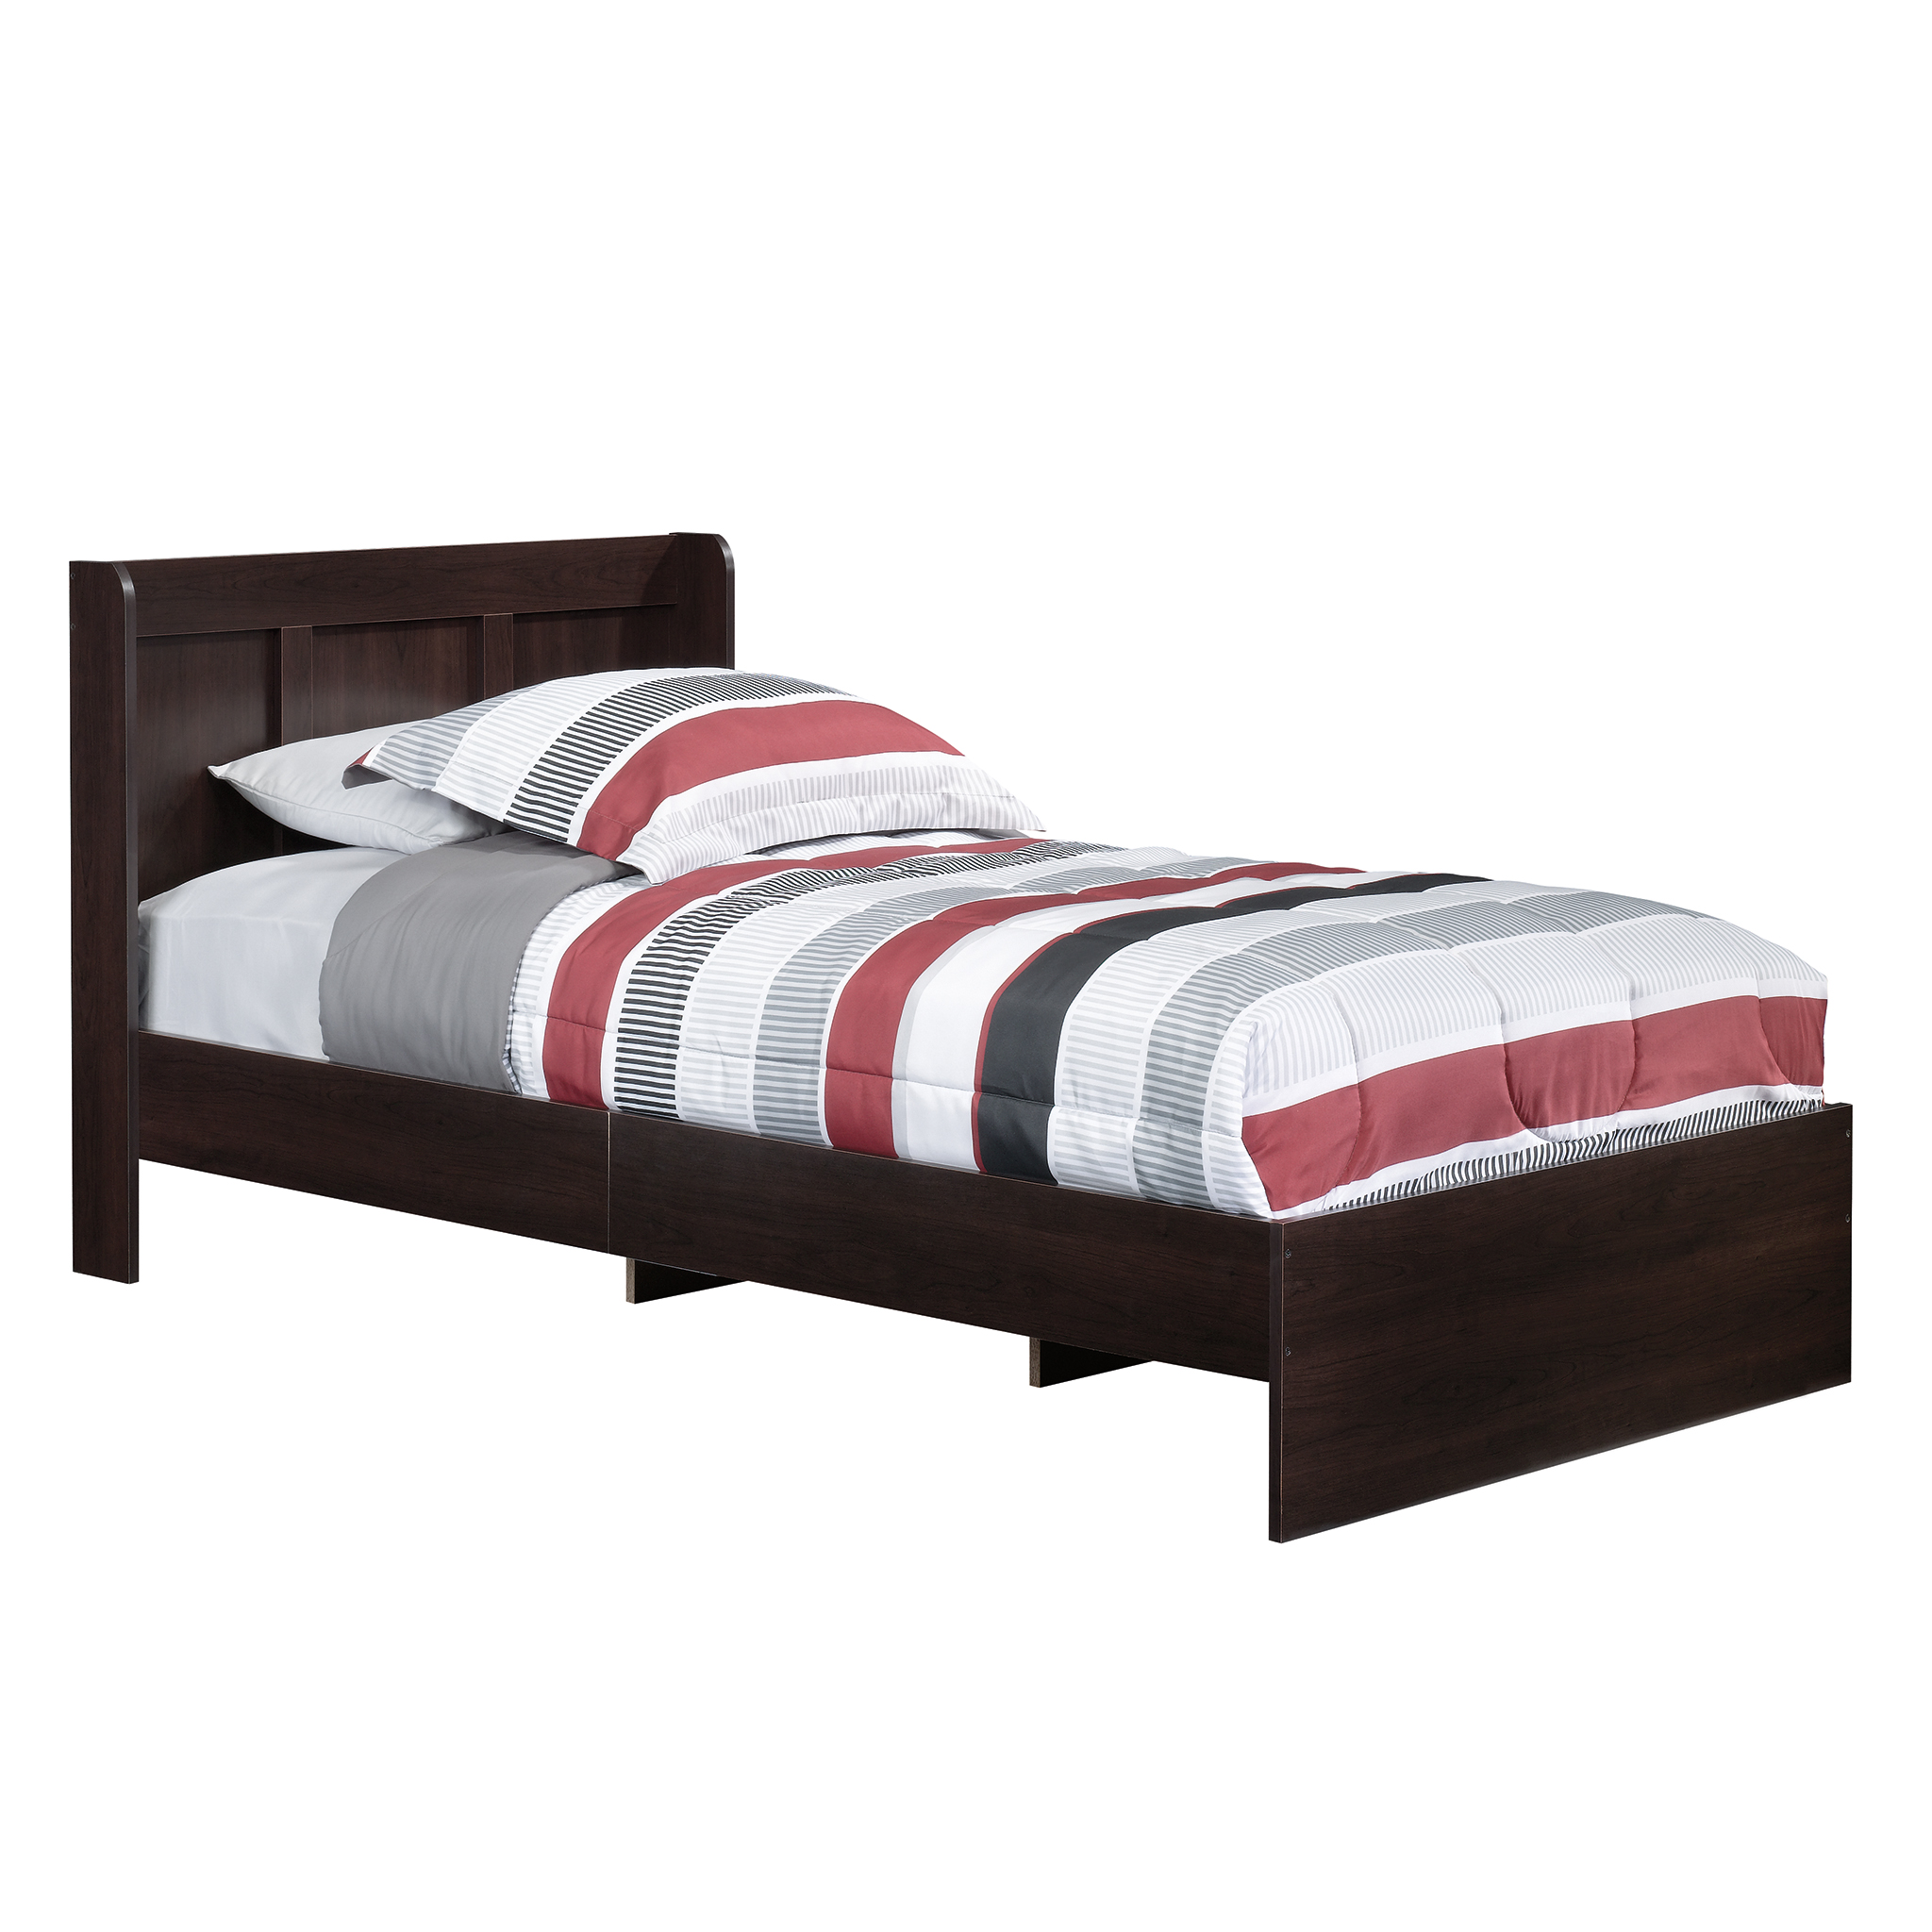 Sauder Parklane Kids Twin Platform Bed With Headboard